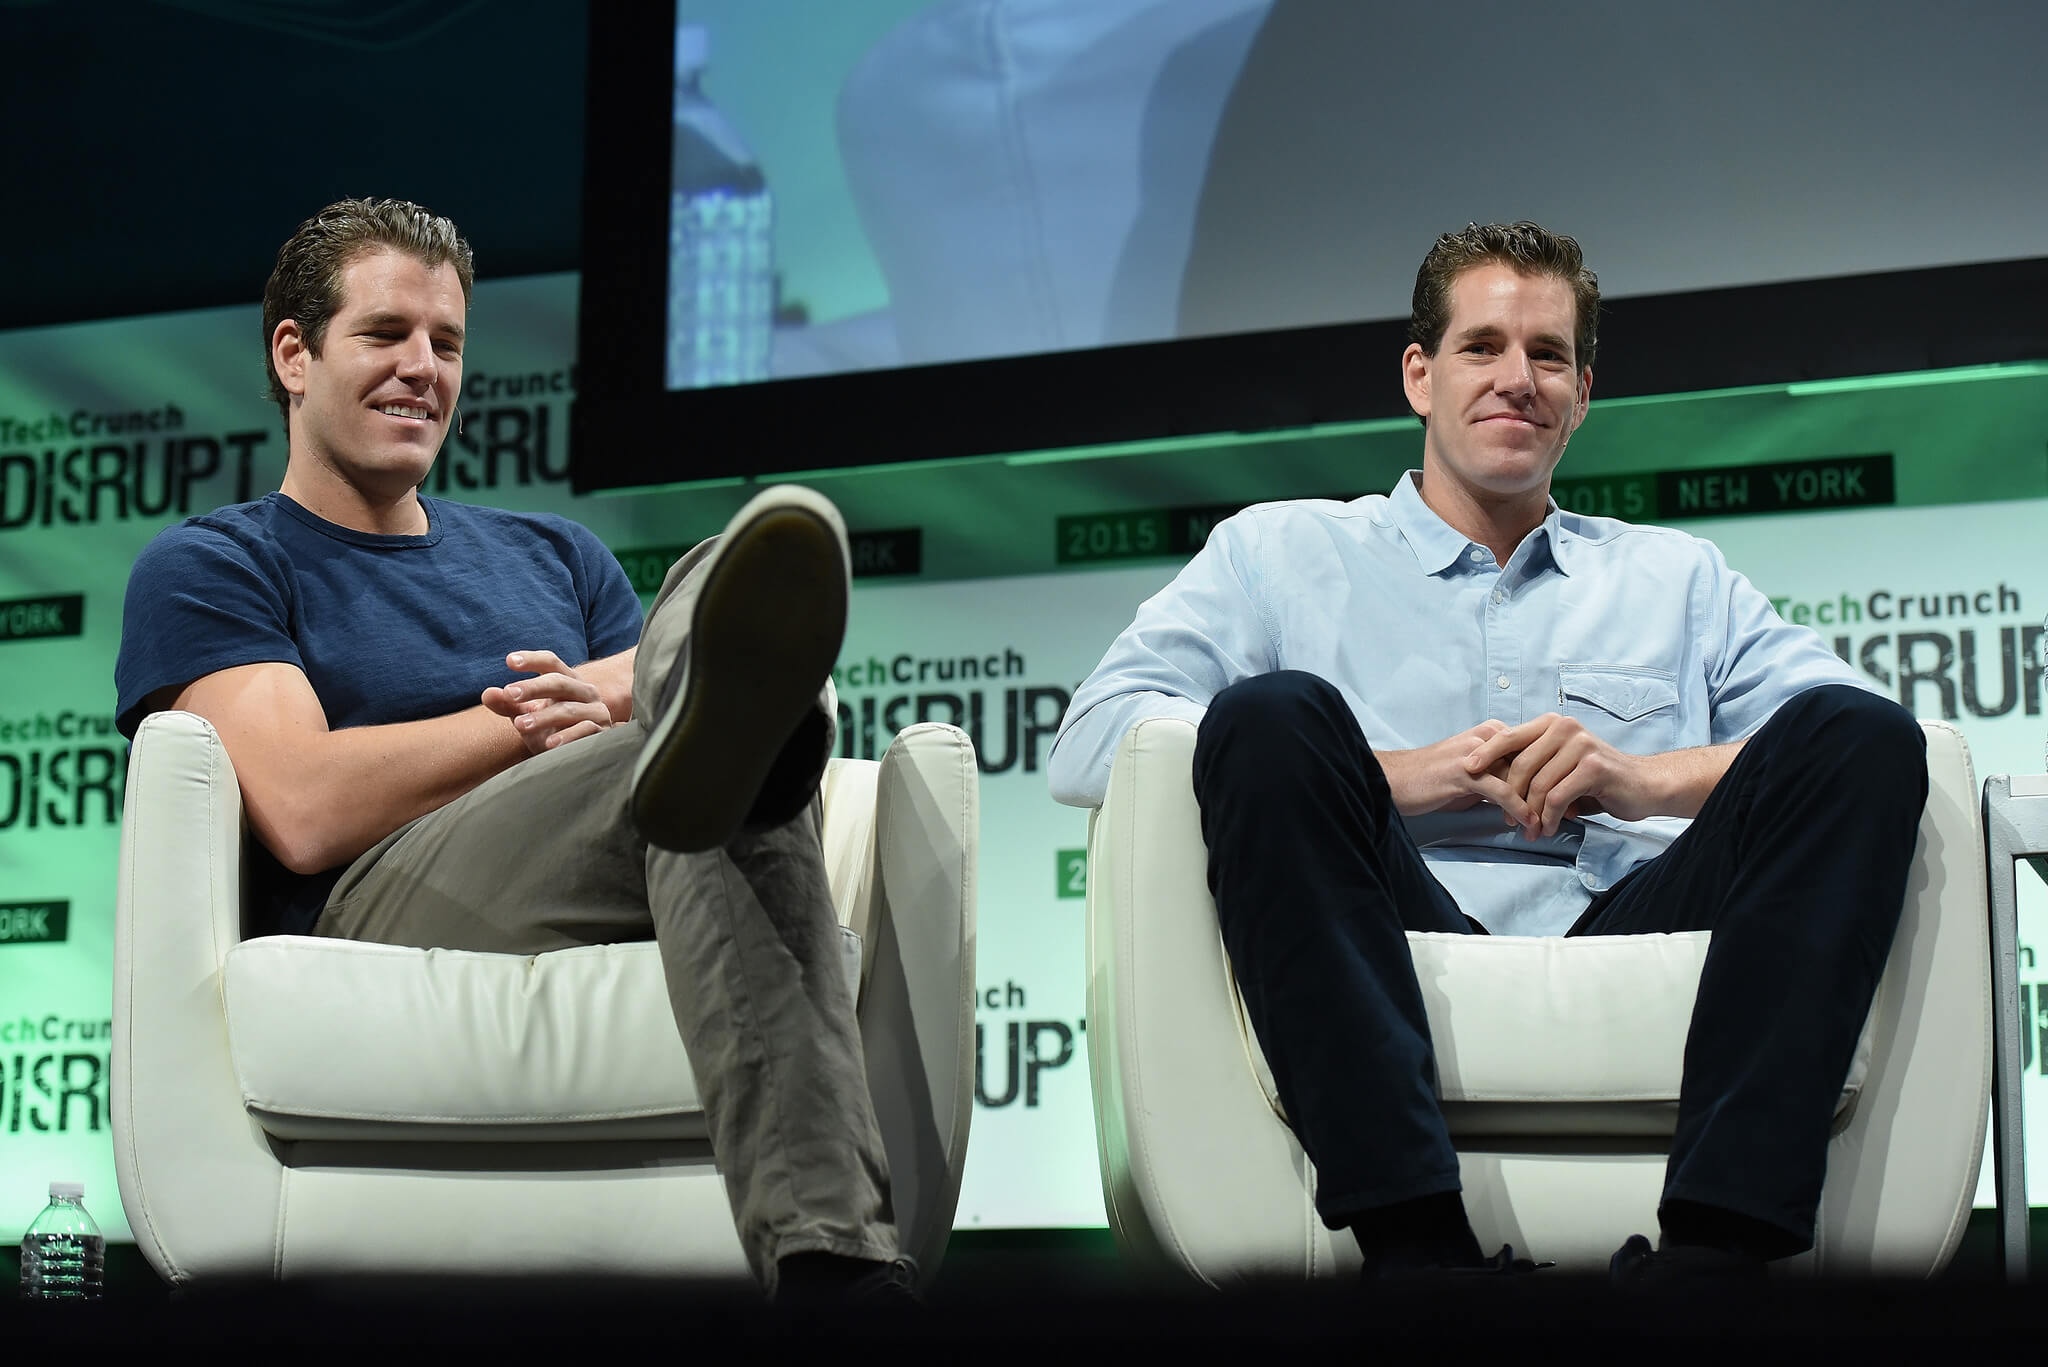 Facebook Alumni Winklevoss Twins Choose Crypto as Their Legacy